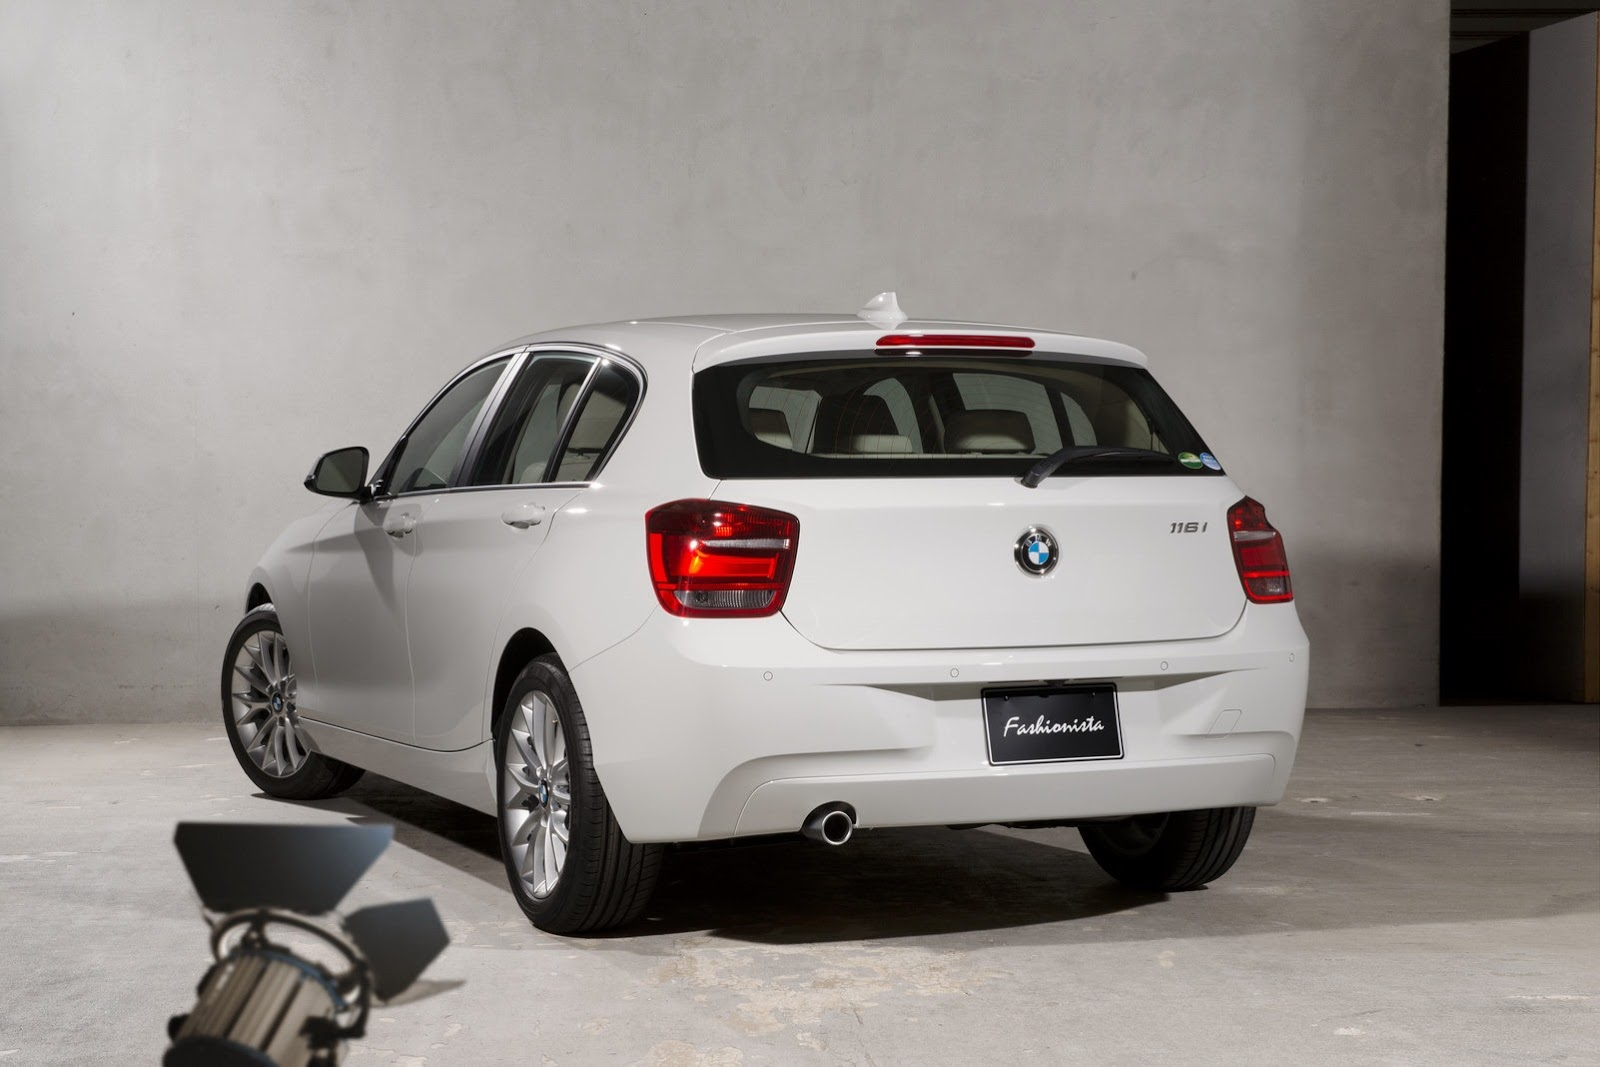 BMW 116i Fashionista - rear